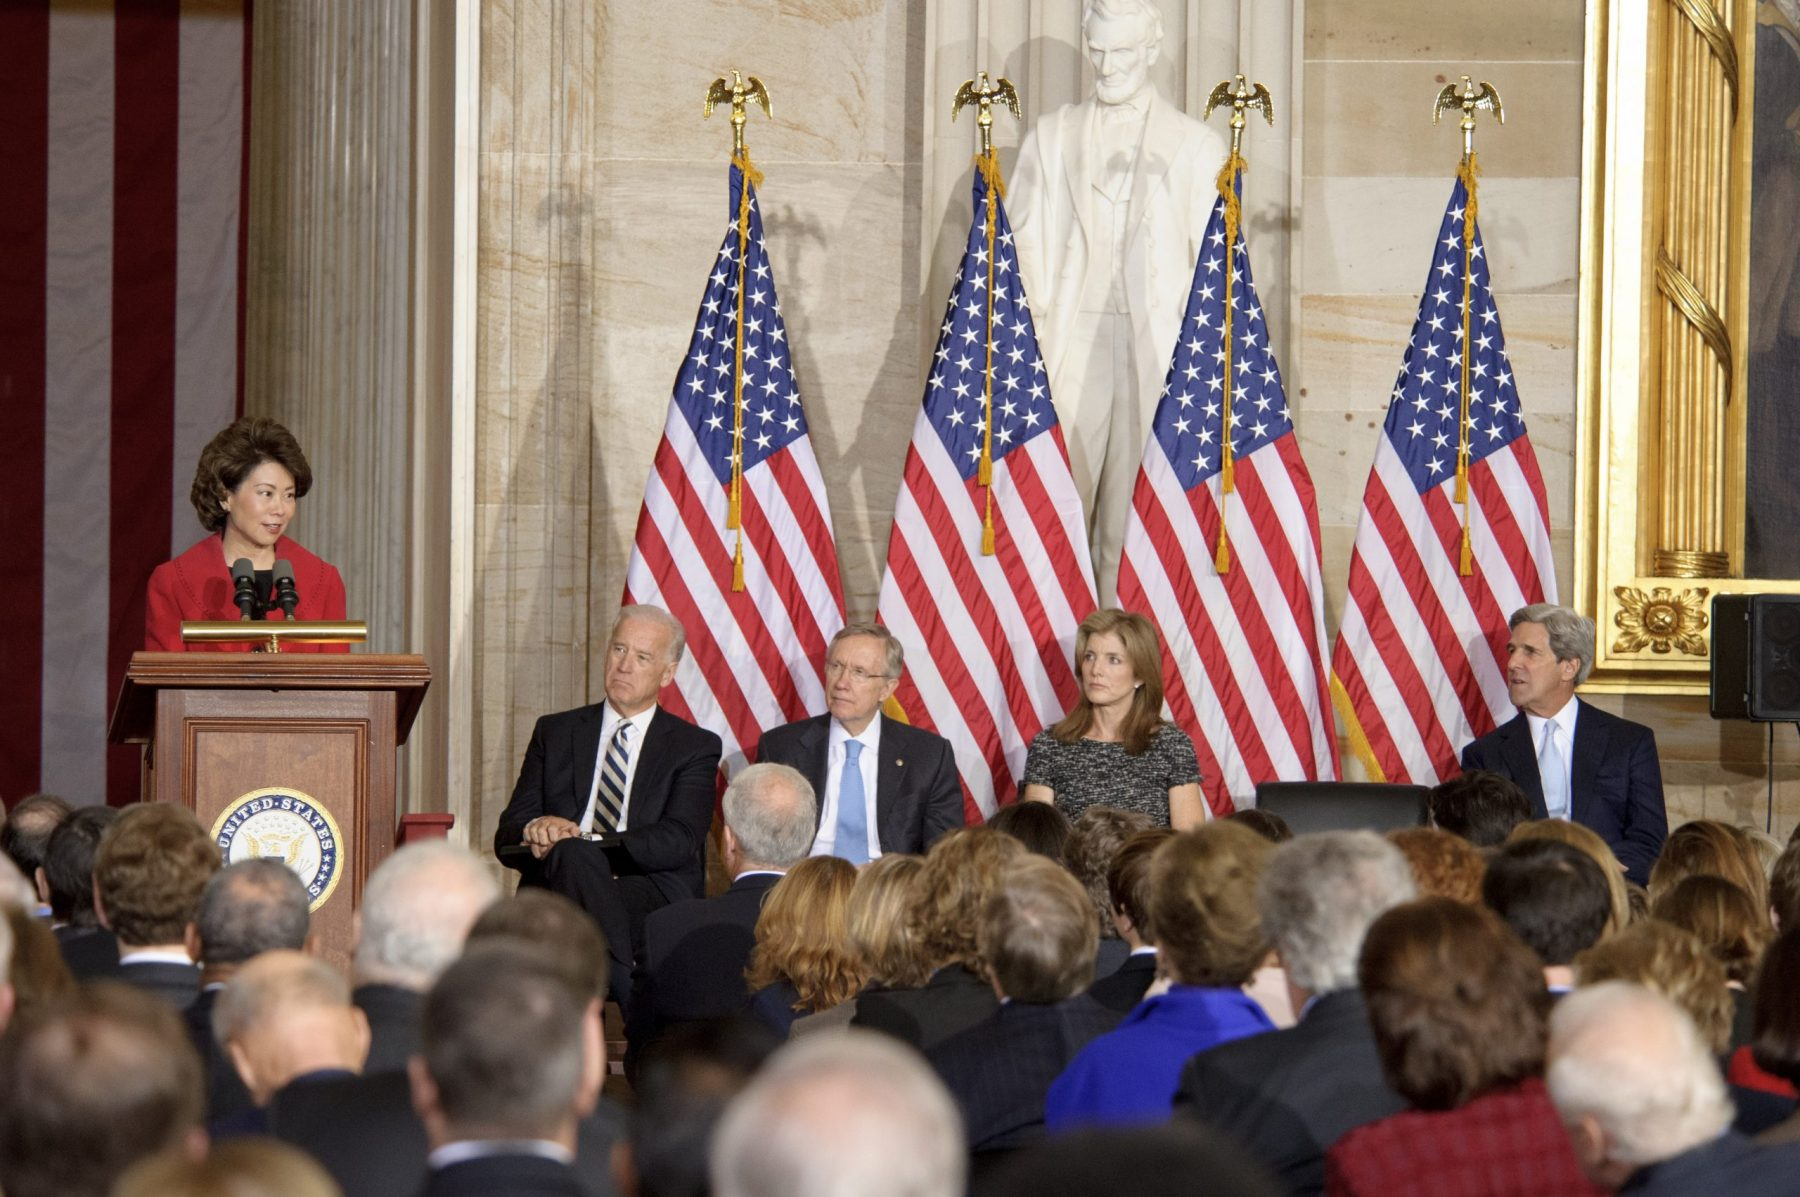 Former Peace Corps Director Elaine Chao giving keynote remarks on the 50th anniversary of the inaugural address of President John F. Kennedy, U. S. Capitol.